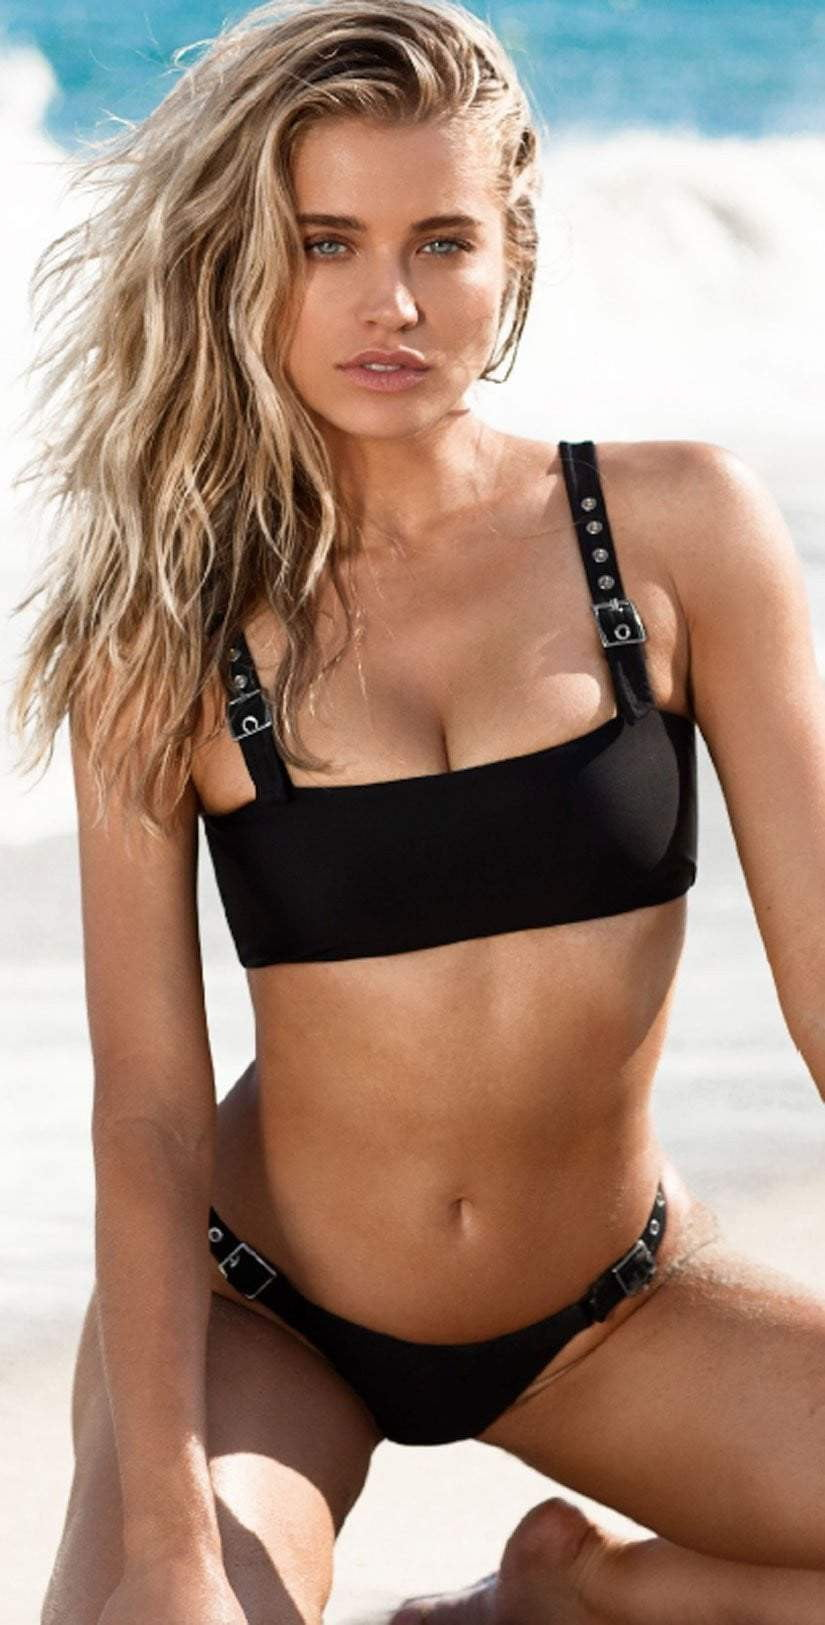 22d6ab47d47 Chloe Rose Buckle Up Babe Bikini Bottom in Black front view of top and  bottom